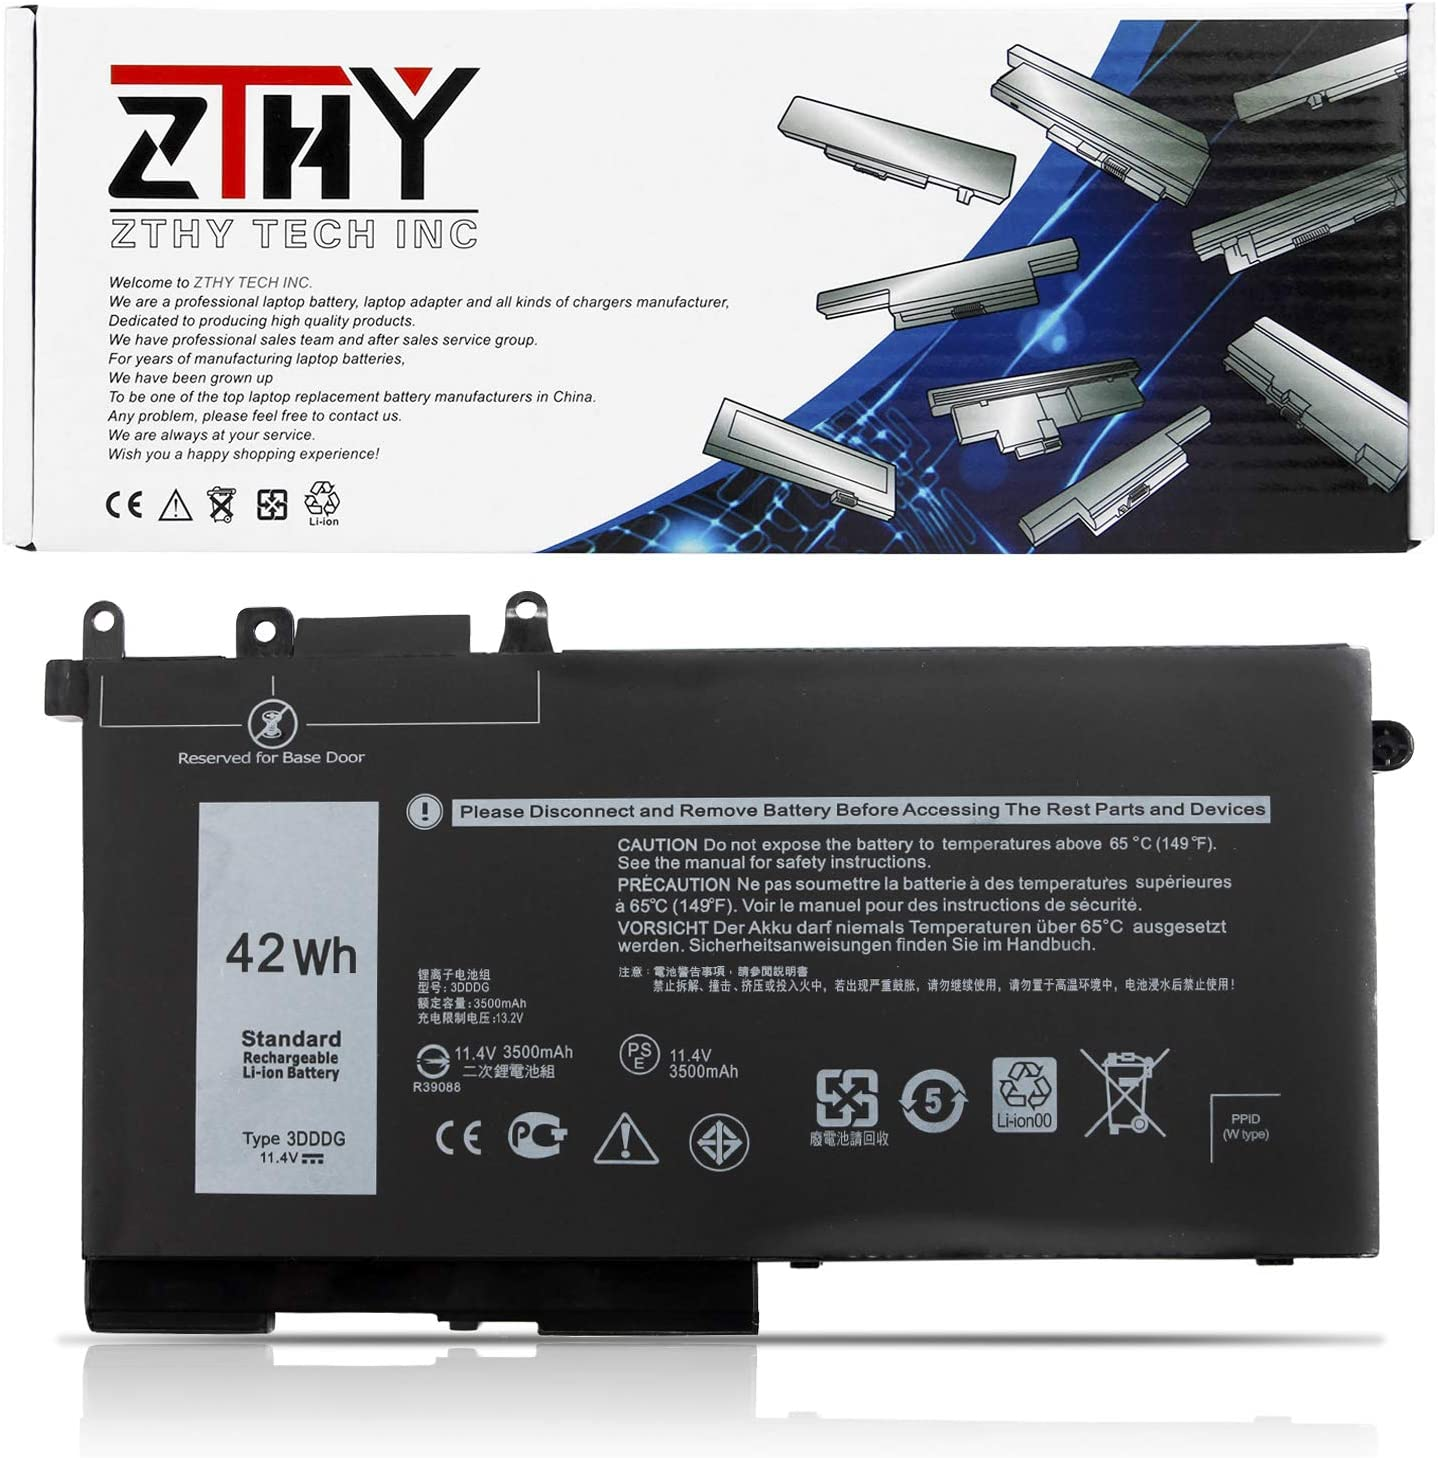 ZTHY 3DDDG Laptop Battery Replacement for Dell Latitude E5280 E5480 E5580 5280 5288 5290 5480 5488 5490 5491 5495 5580 5590 Precision 3520 3530 Series 049XH 45N3J 3VC9Y RRJDX 451-BBZP 11.4V 42Wh 3Cell